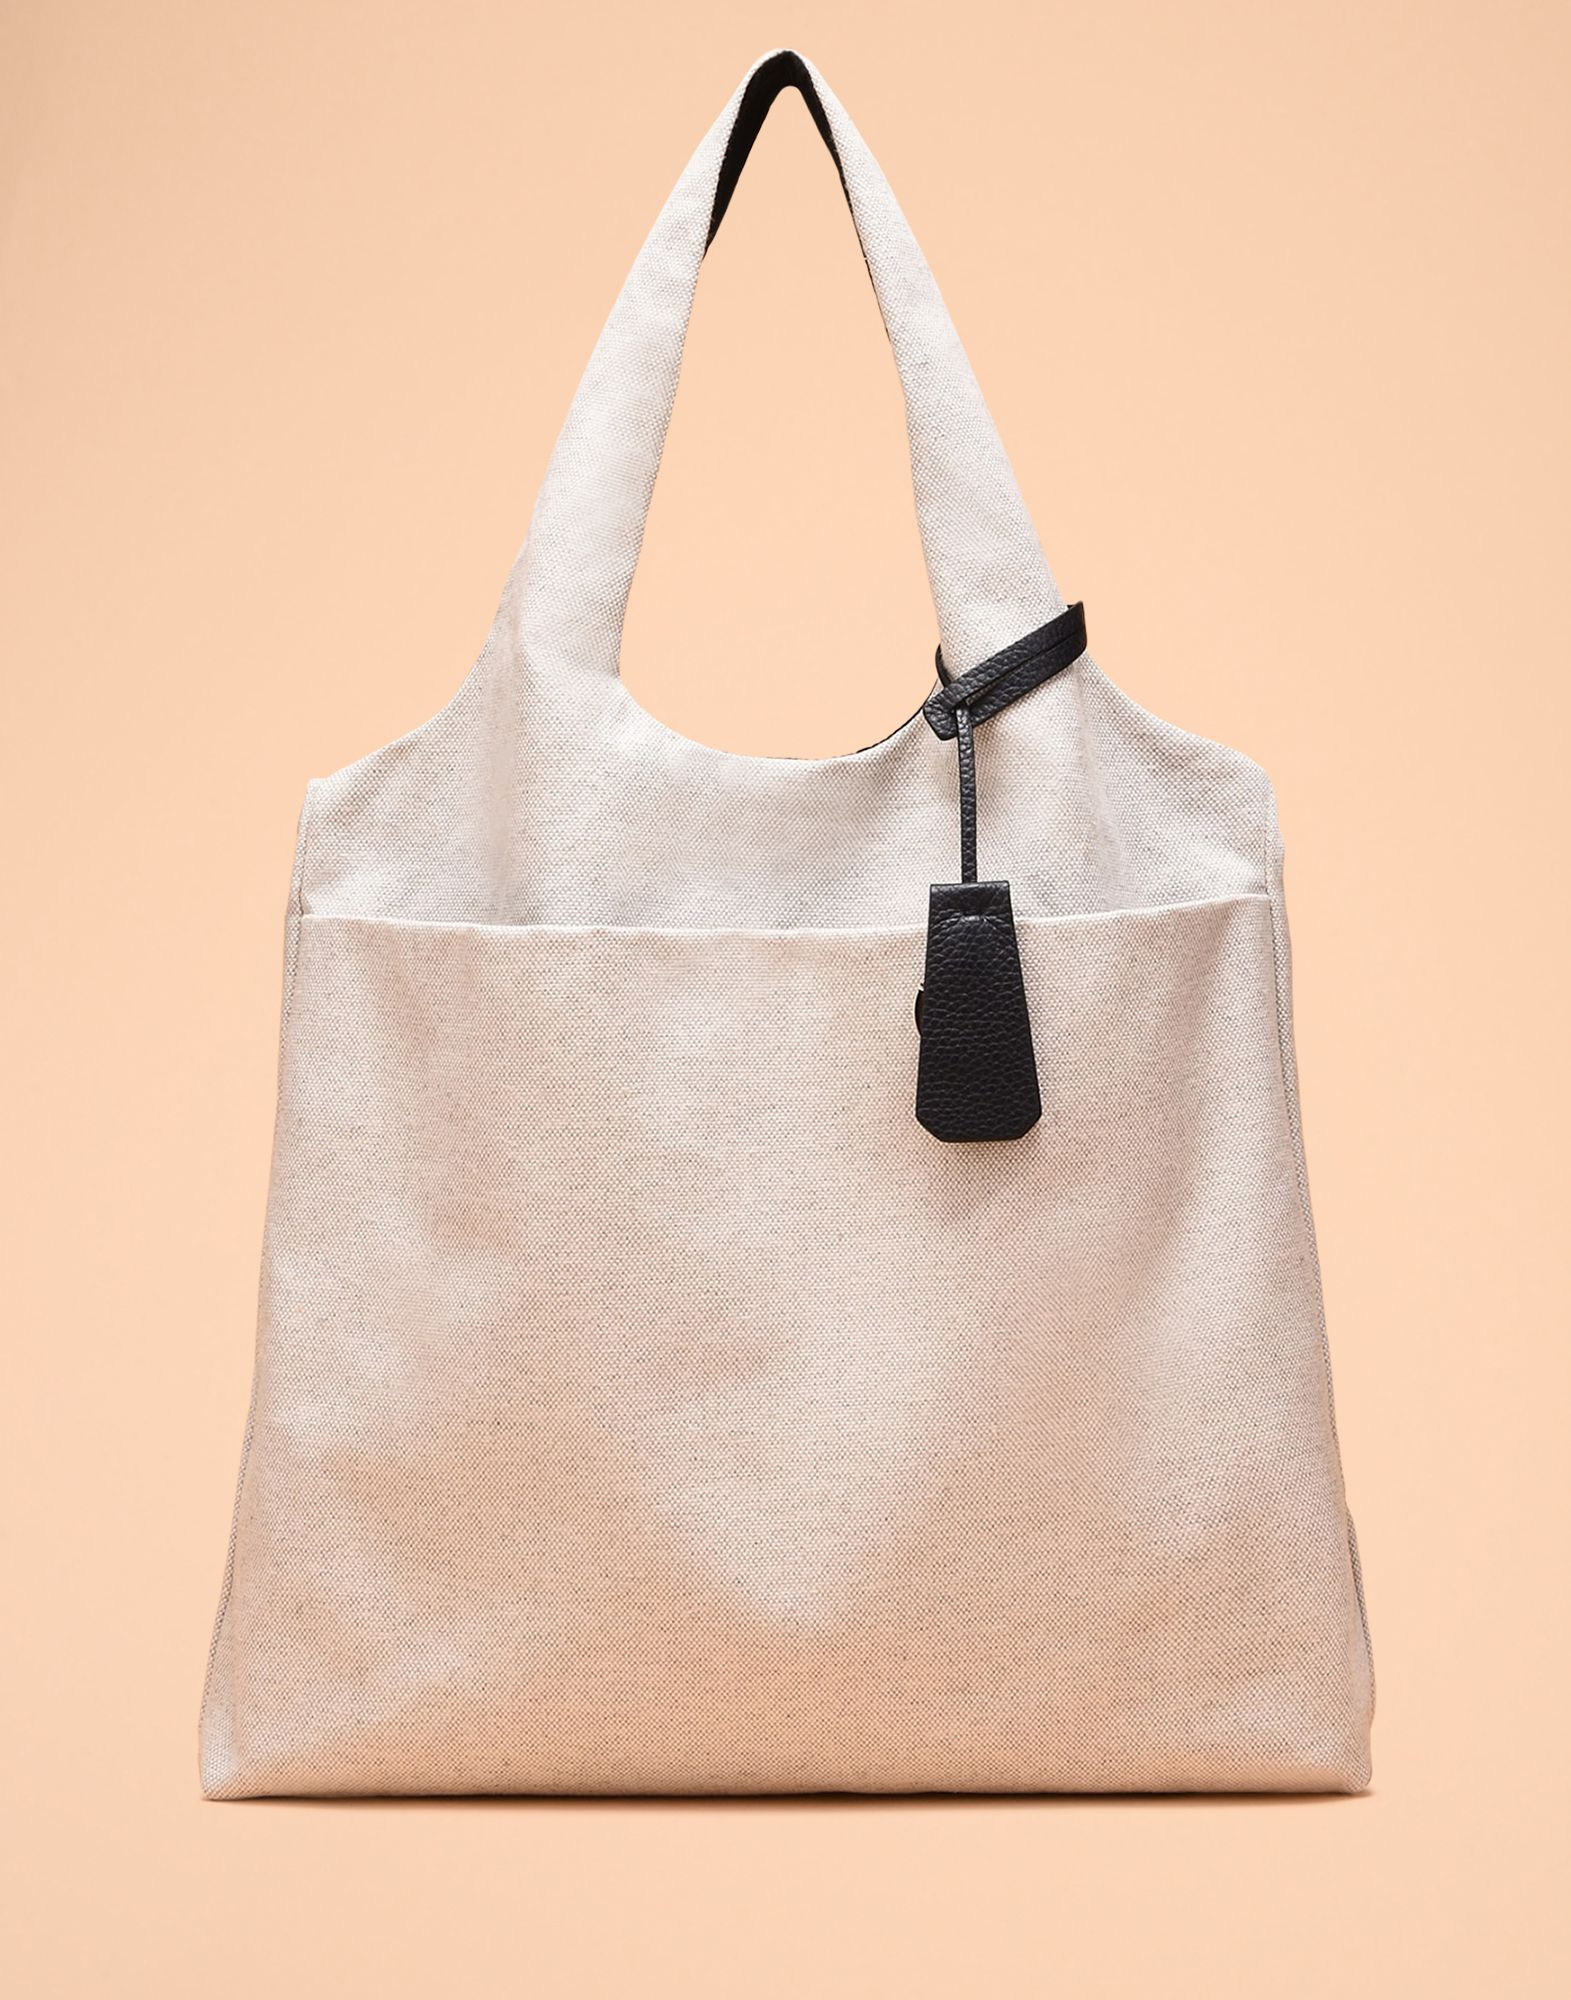 TOTE - LIGHT GREY